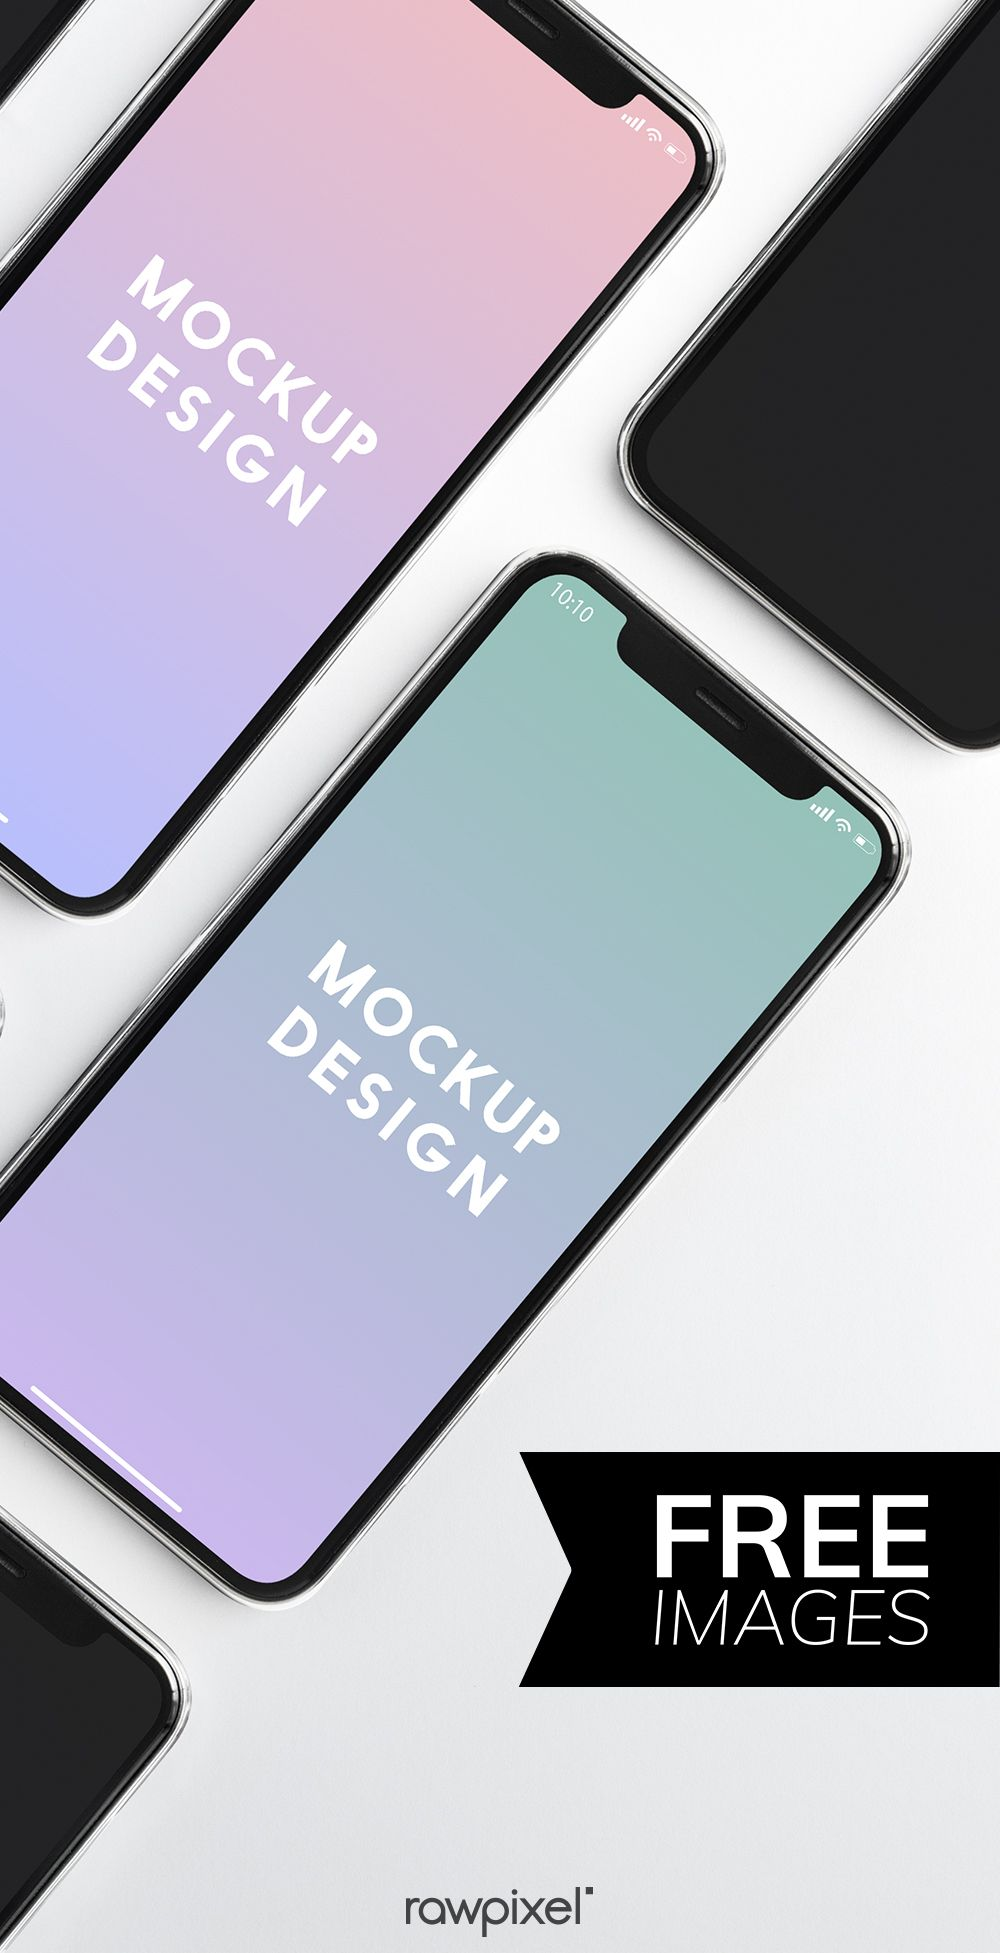 11456+ Iphone Mockup Psd Free Download Photoshop File